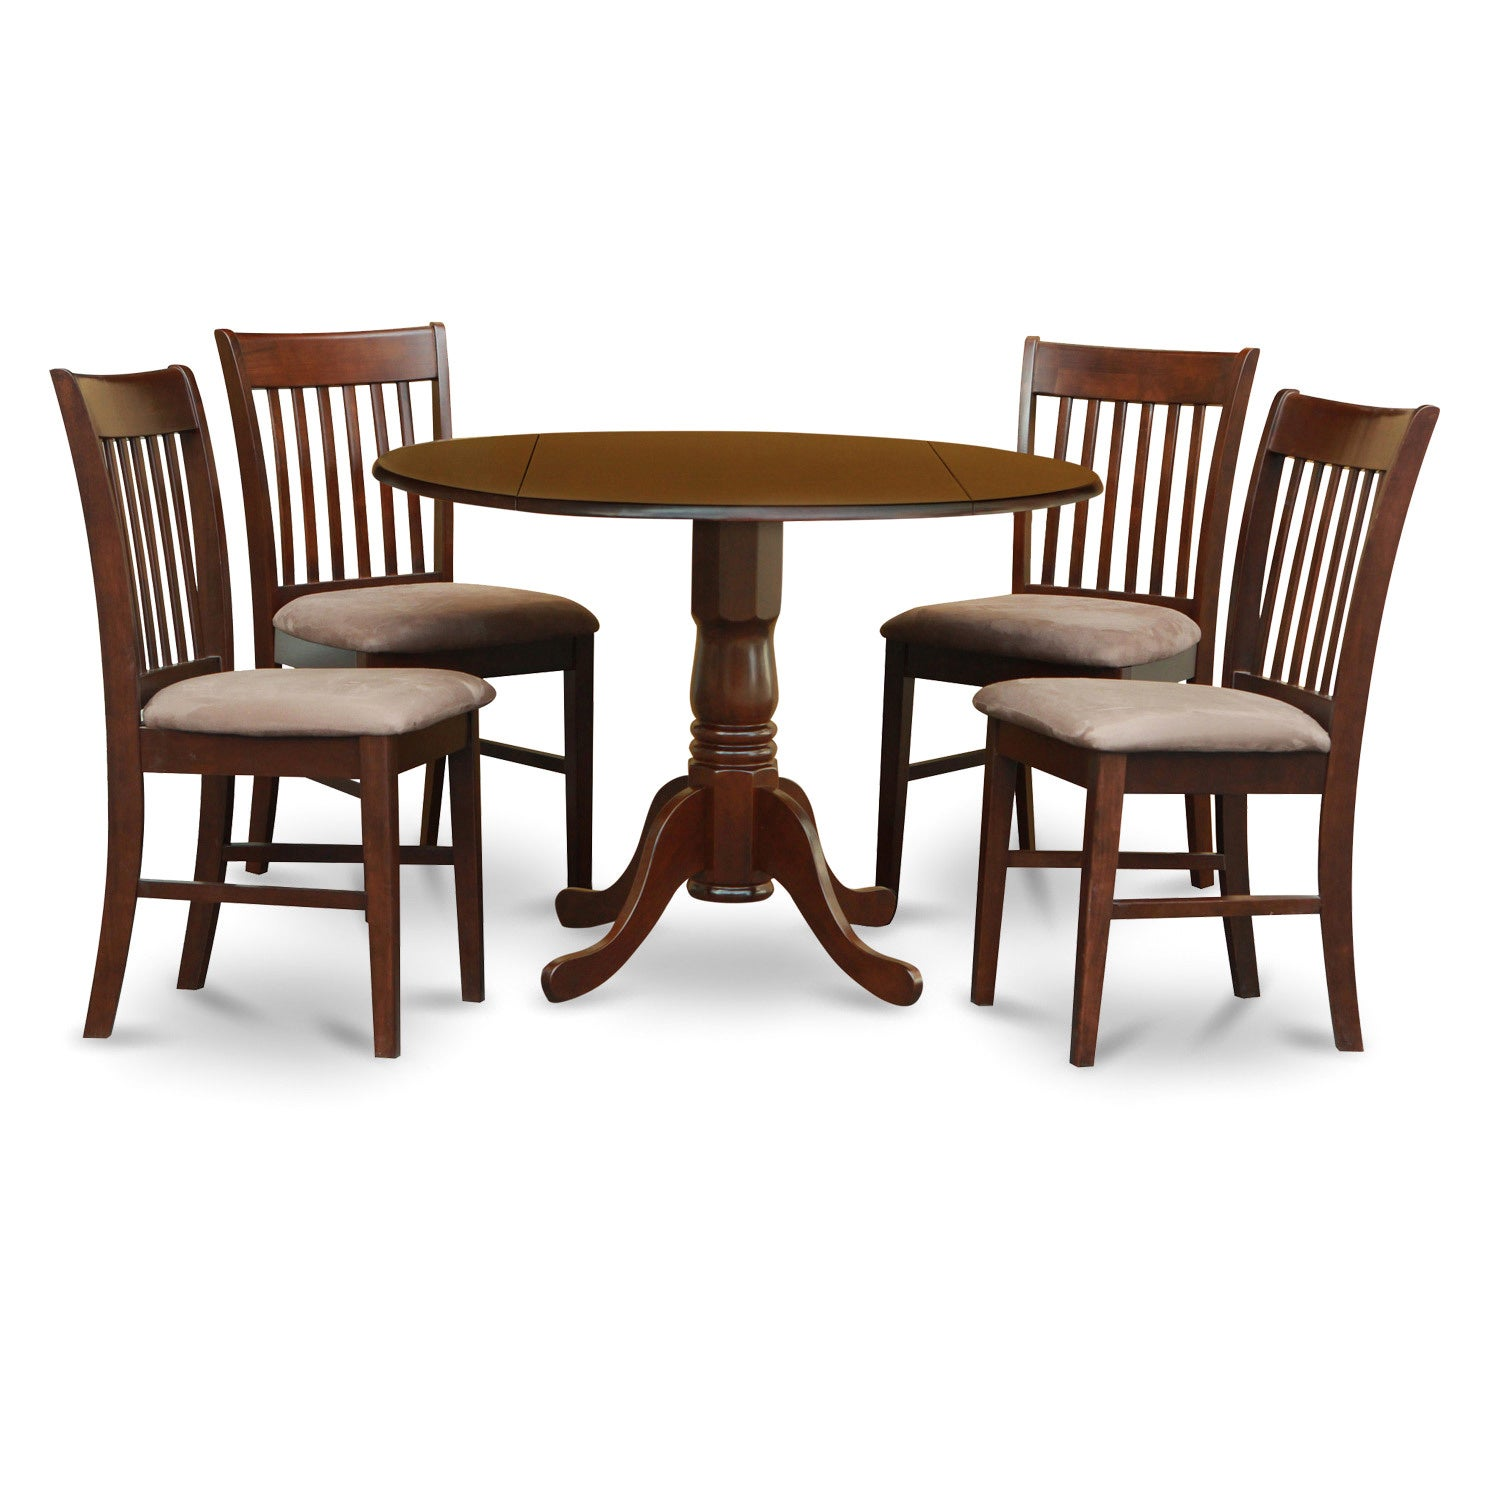 Dining Set Round Table: Mahogany Round Table And Dinette Chairs 5-piece Dining Set